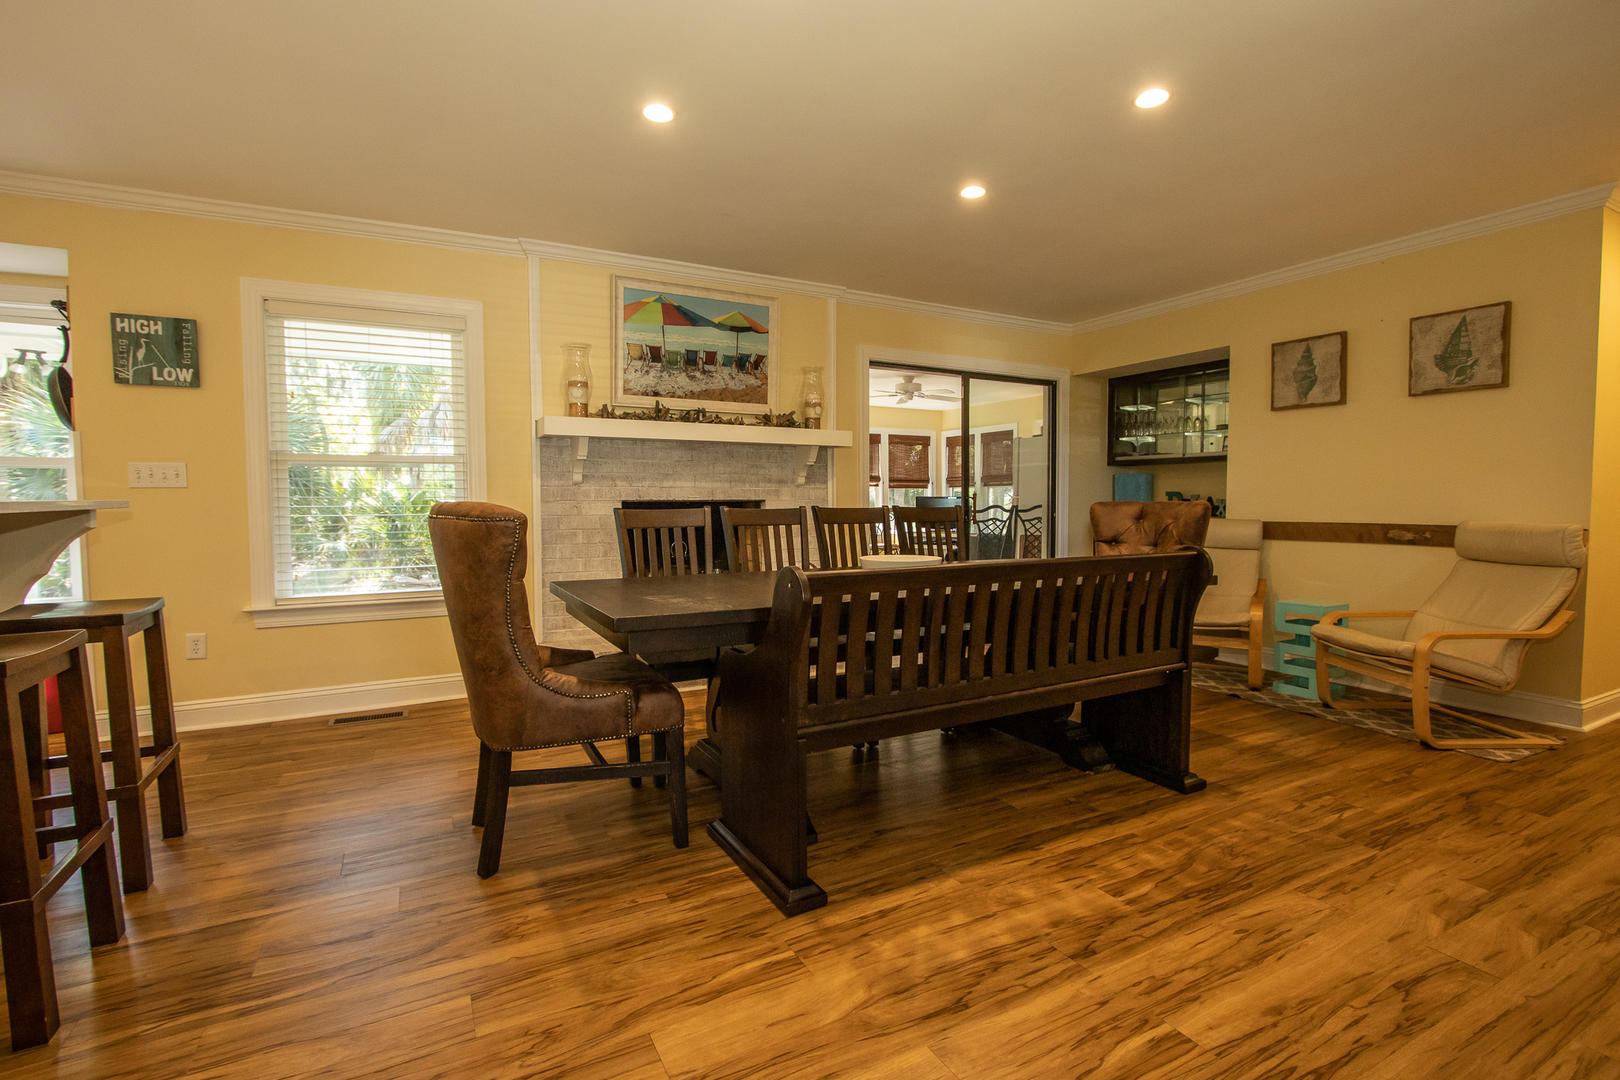 Dining, 10 seat table, mini bar, access to sunroom